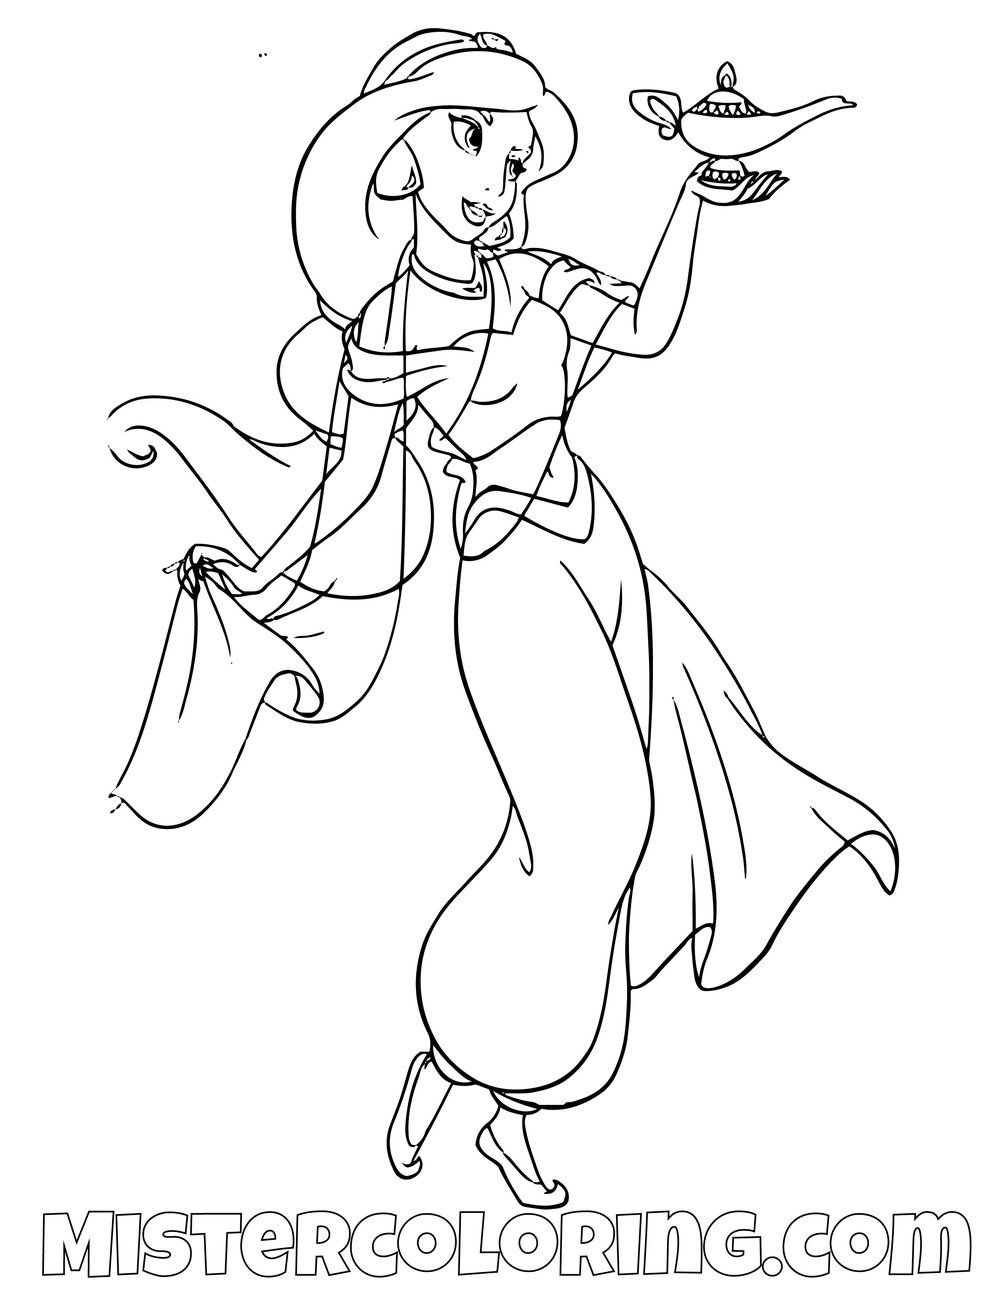 Princess Jasmine Holding Genie Lamp Aladdin Coloring Page Fairy Coloring Pages Elsa Coloring Pages Princess Coloring Pages